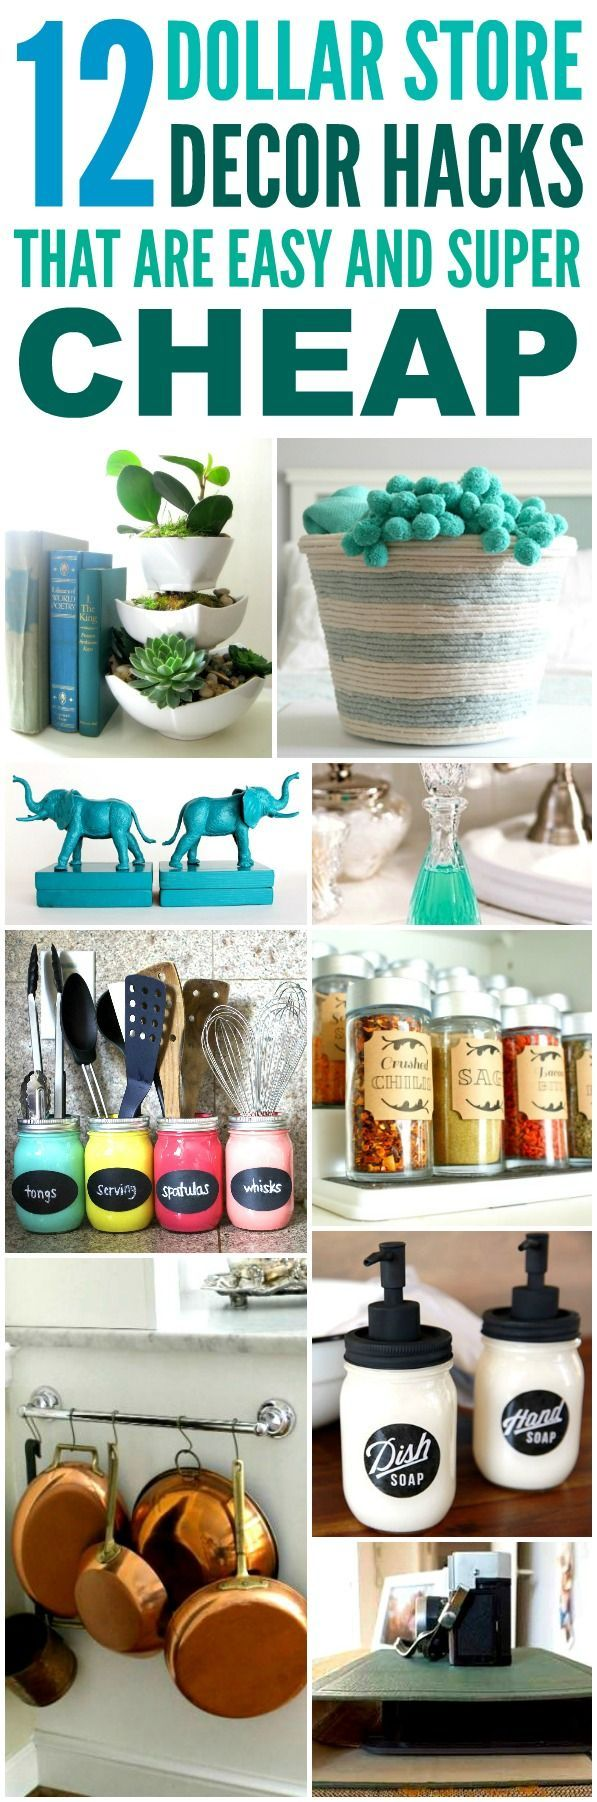 These 12 Dollar Store Decor Hacks are THE BEST! I'm so glad I found these AW...